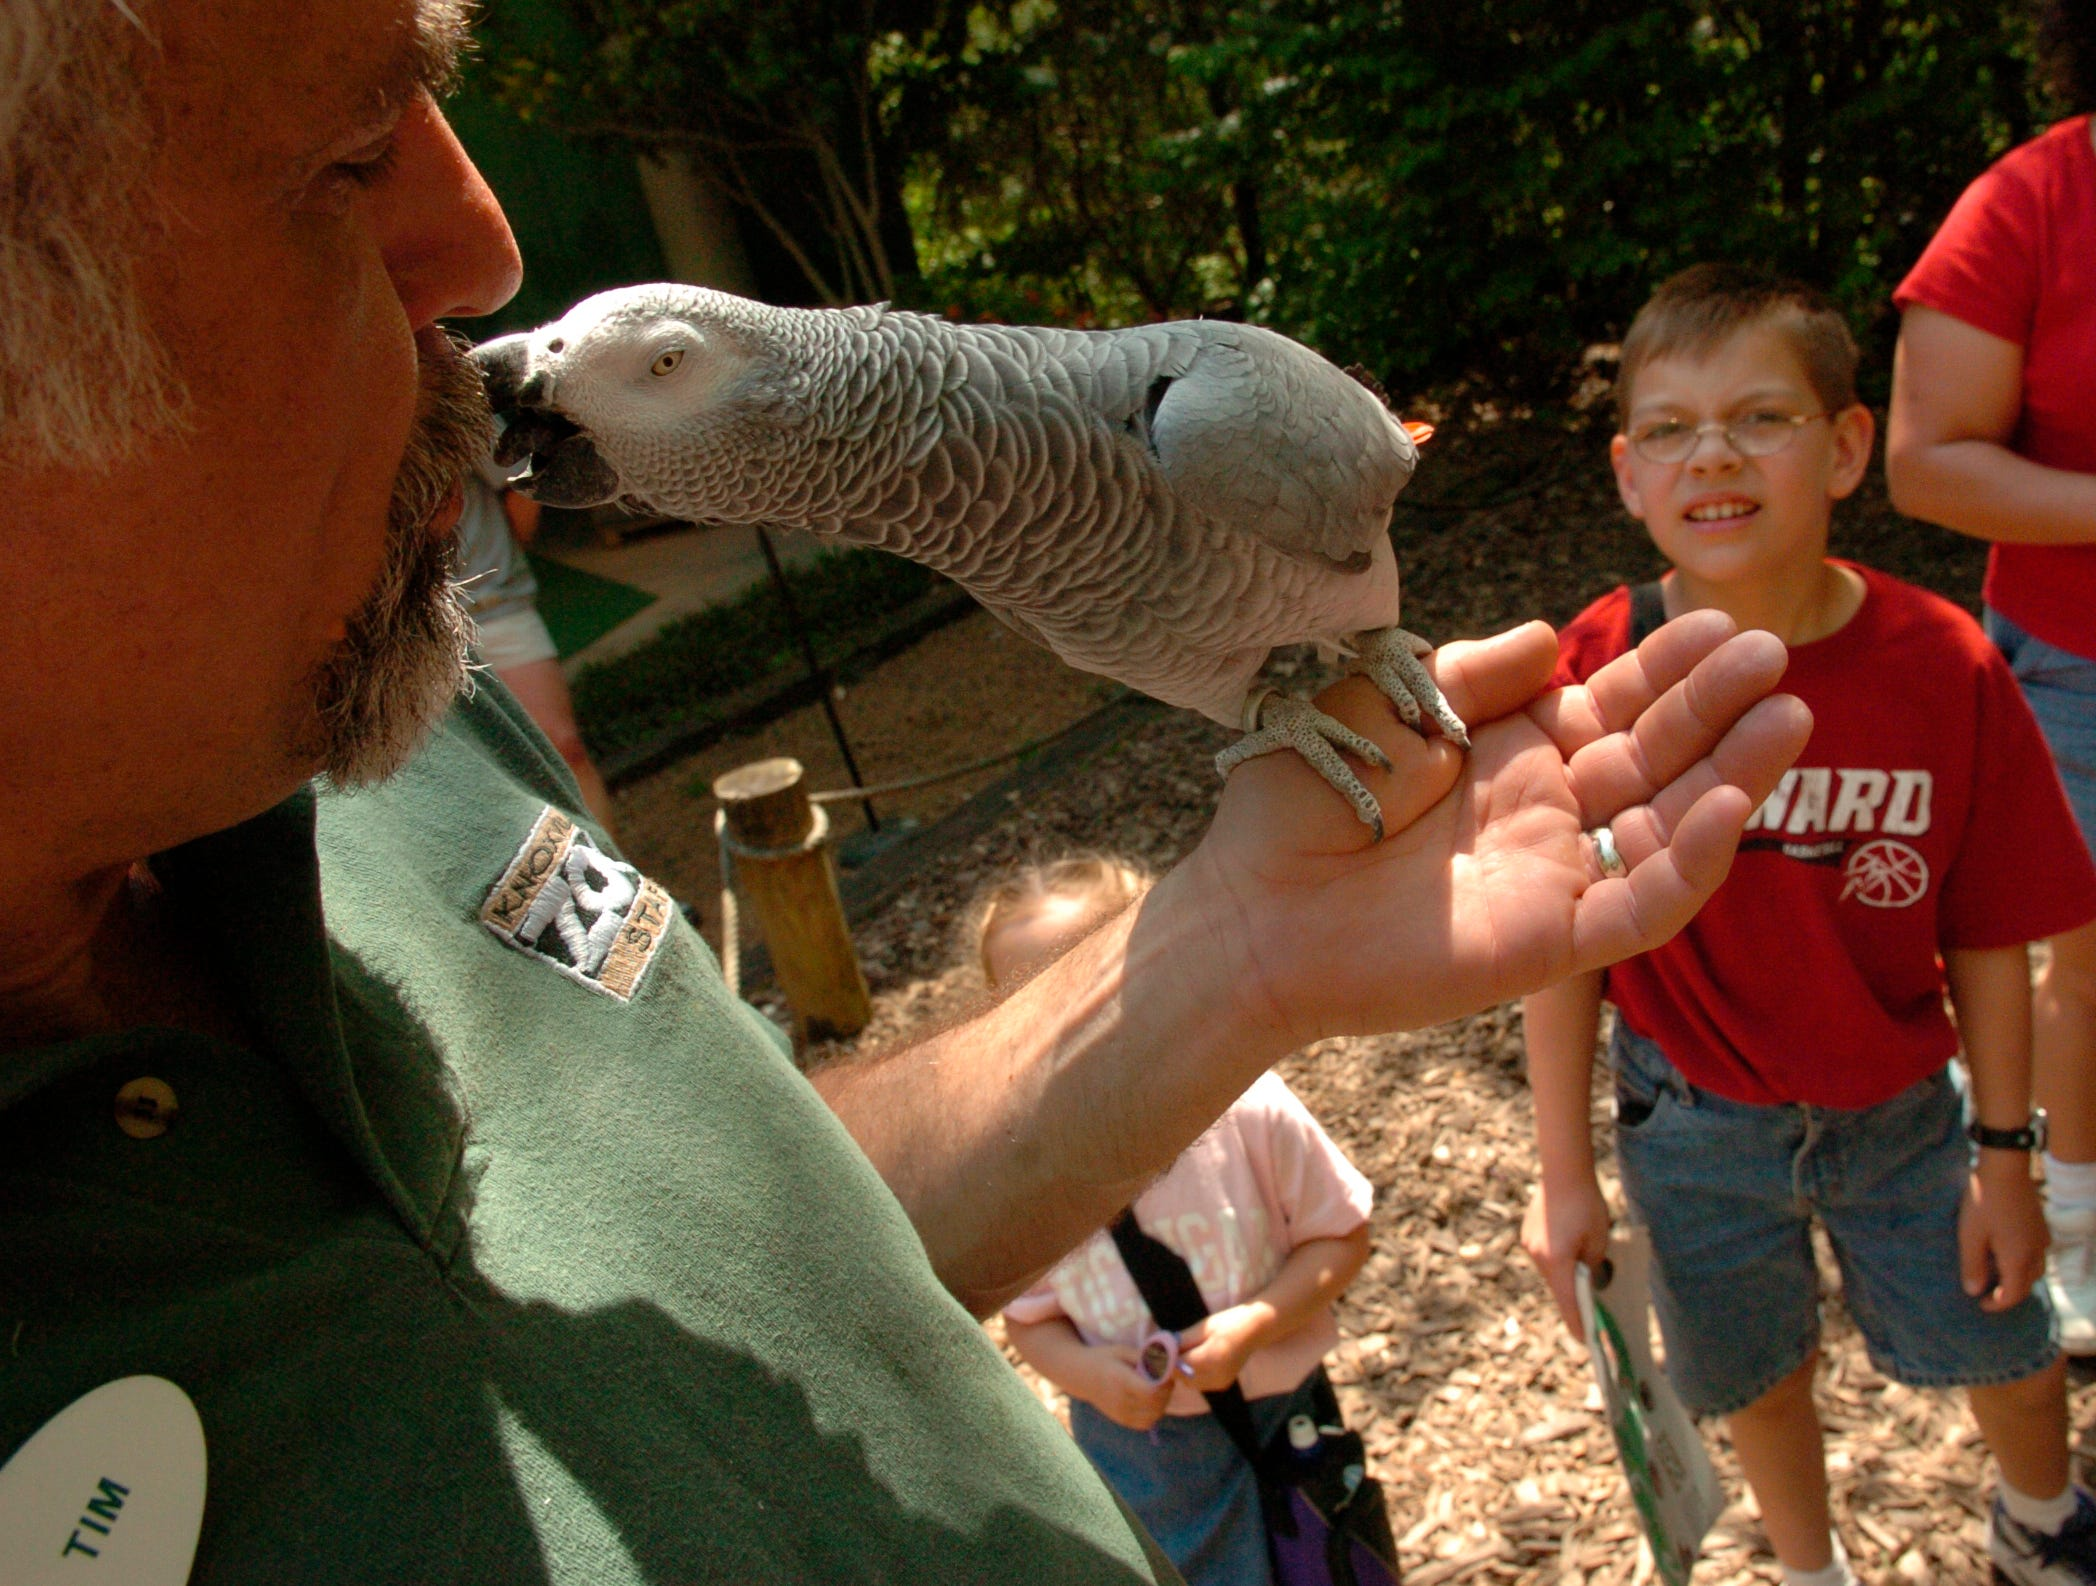 Tim Adams, Knoxville Zoo's Director of Education, gets a kiss from Einstein the African Gray Parrot as Paul Thomas Knickelbein, 9, watches after the bird show at The Knoxville Zoo Tuesday afternoon. Adams was Einstein's first trainer at the zoo and he and the bird still have a special bond.